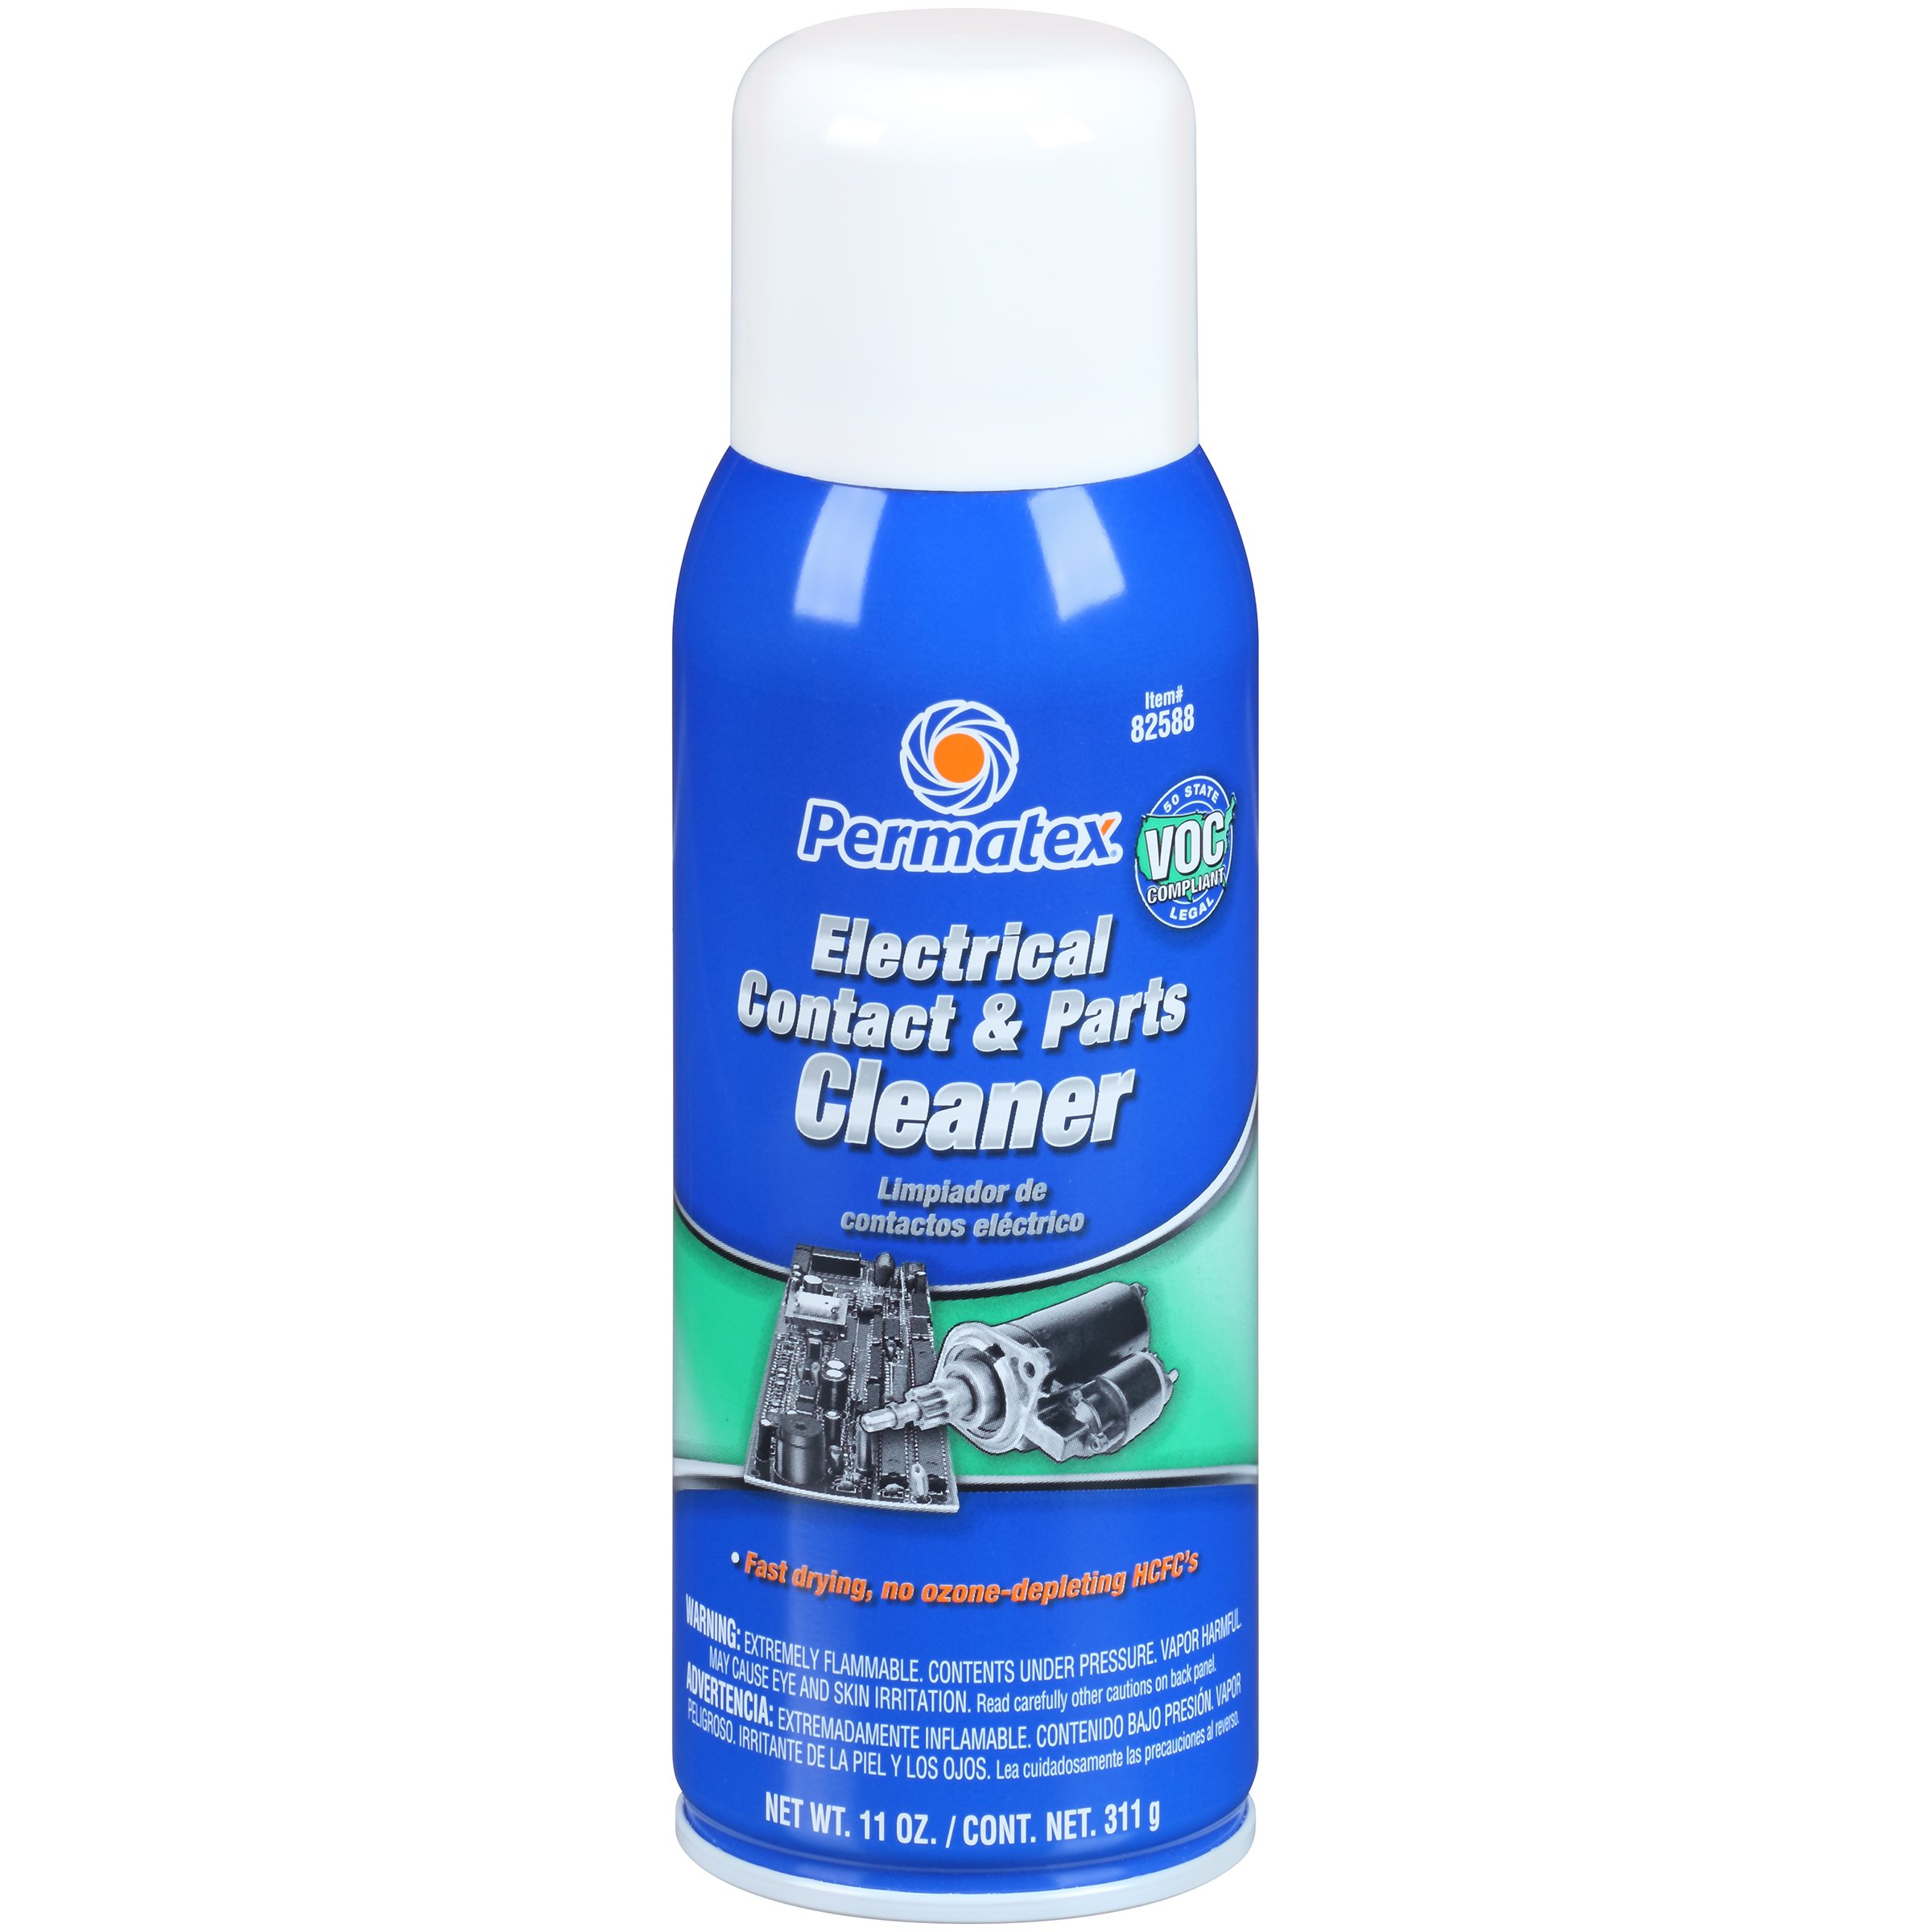 Permatex 82588-12PK Electrical Contact and Parts Cleaner - 11 oz., (Pack